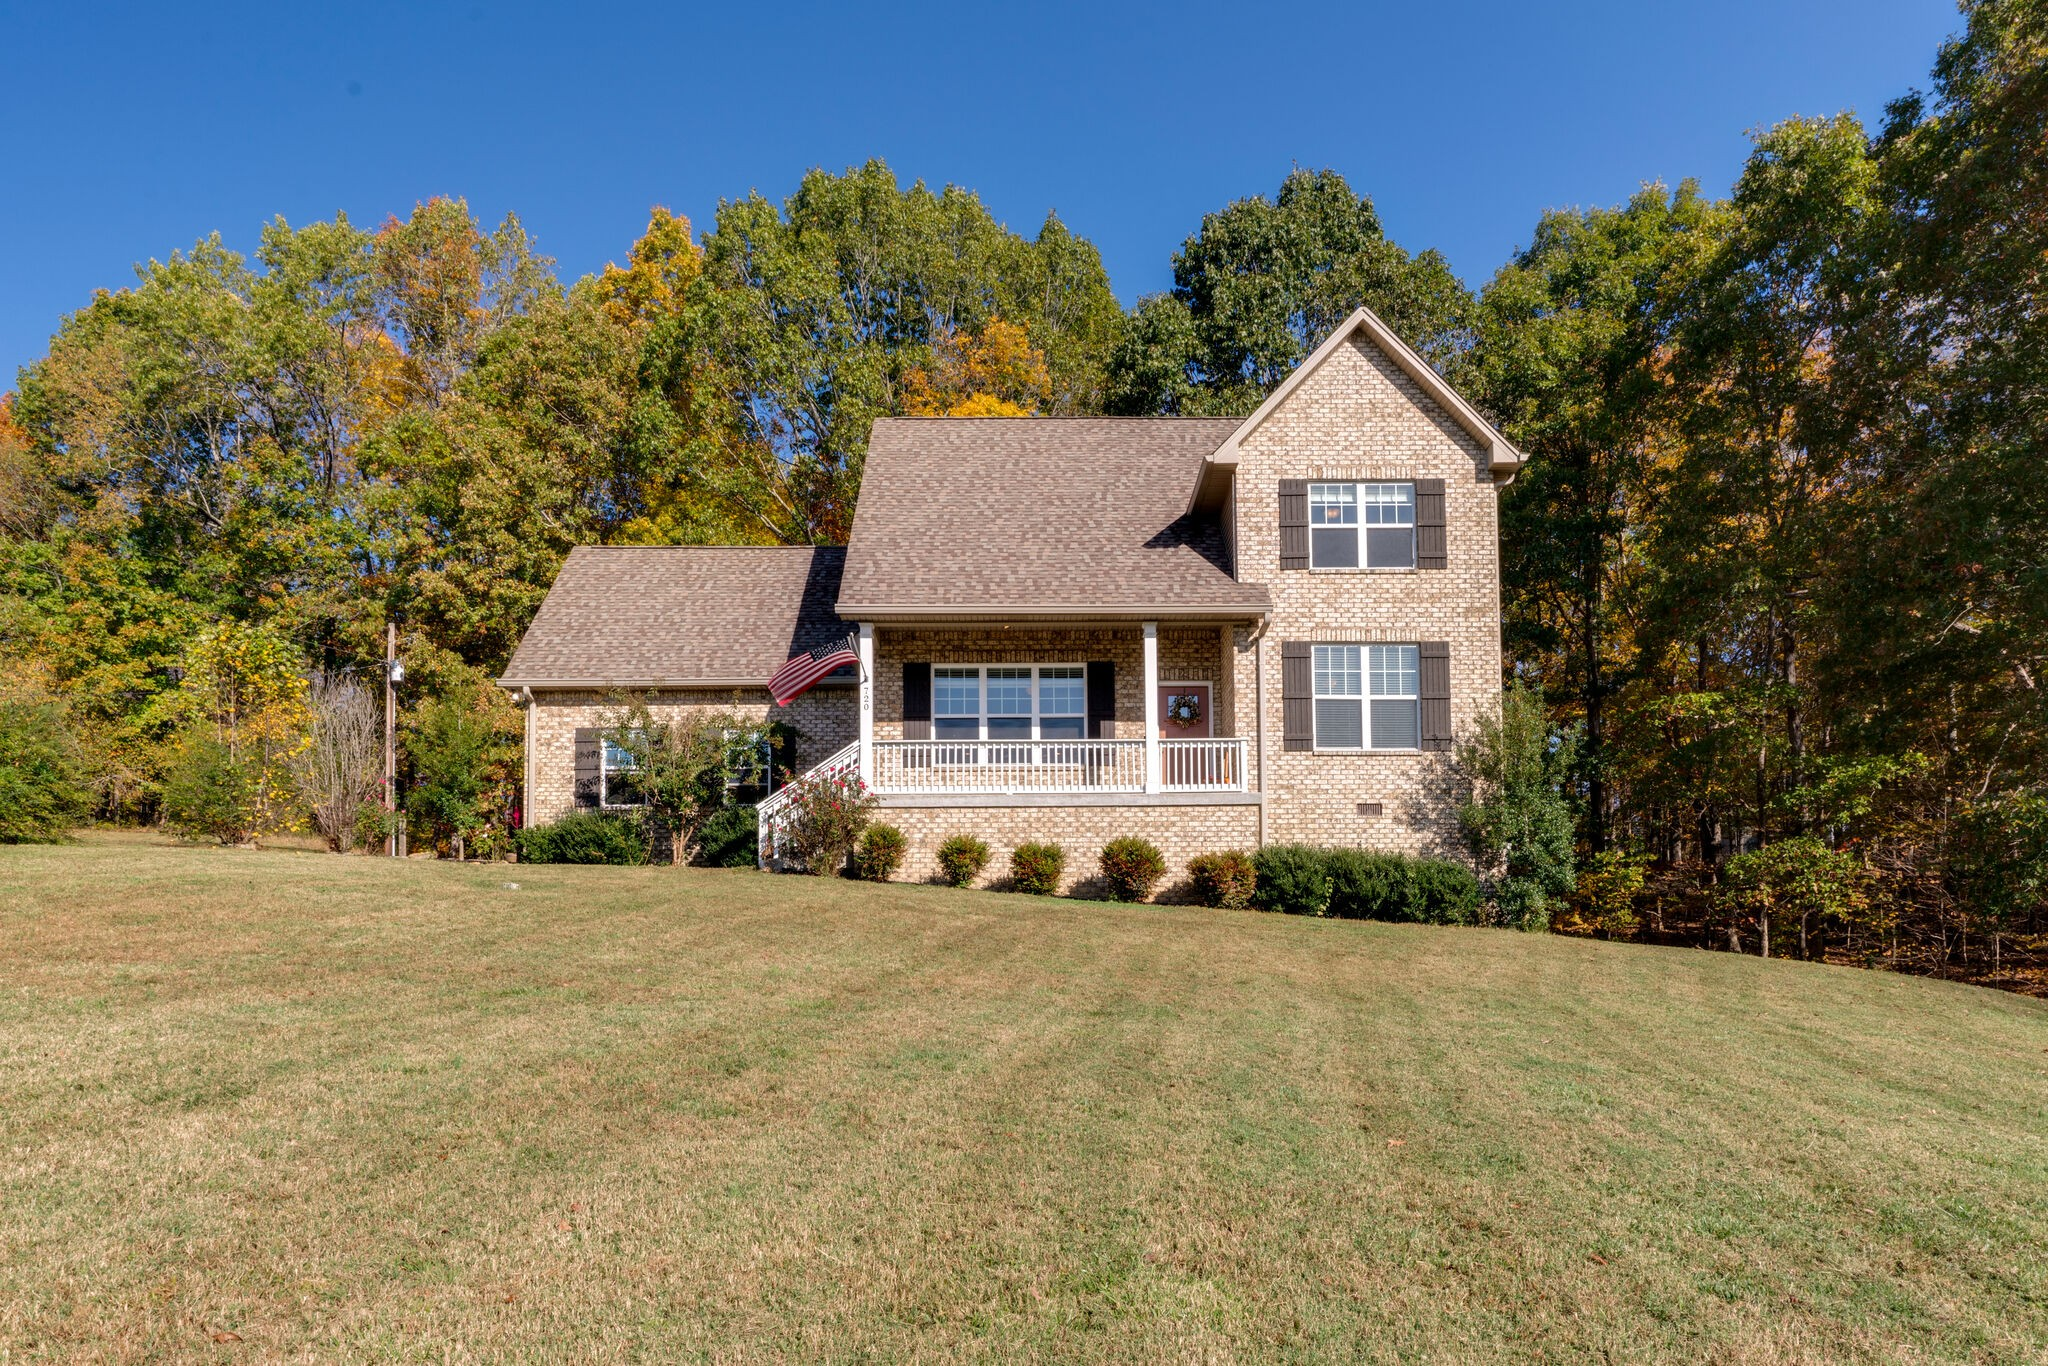 2534 Main St Property Photo - Greenbrier, TN real estate listing